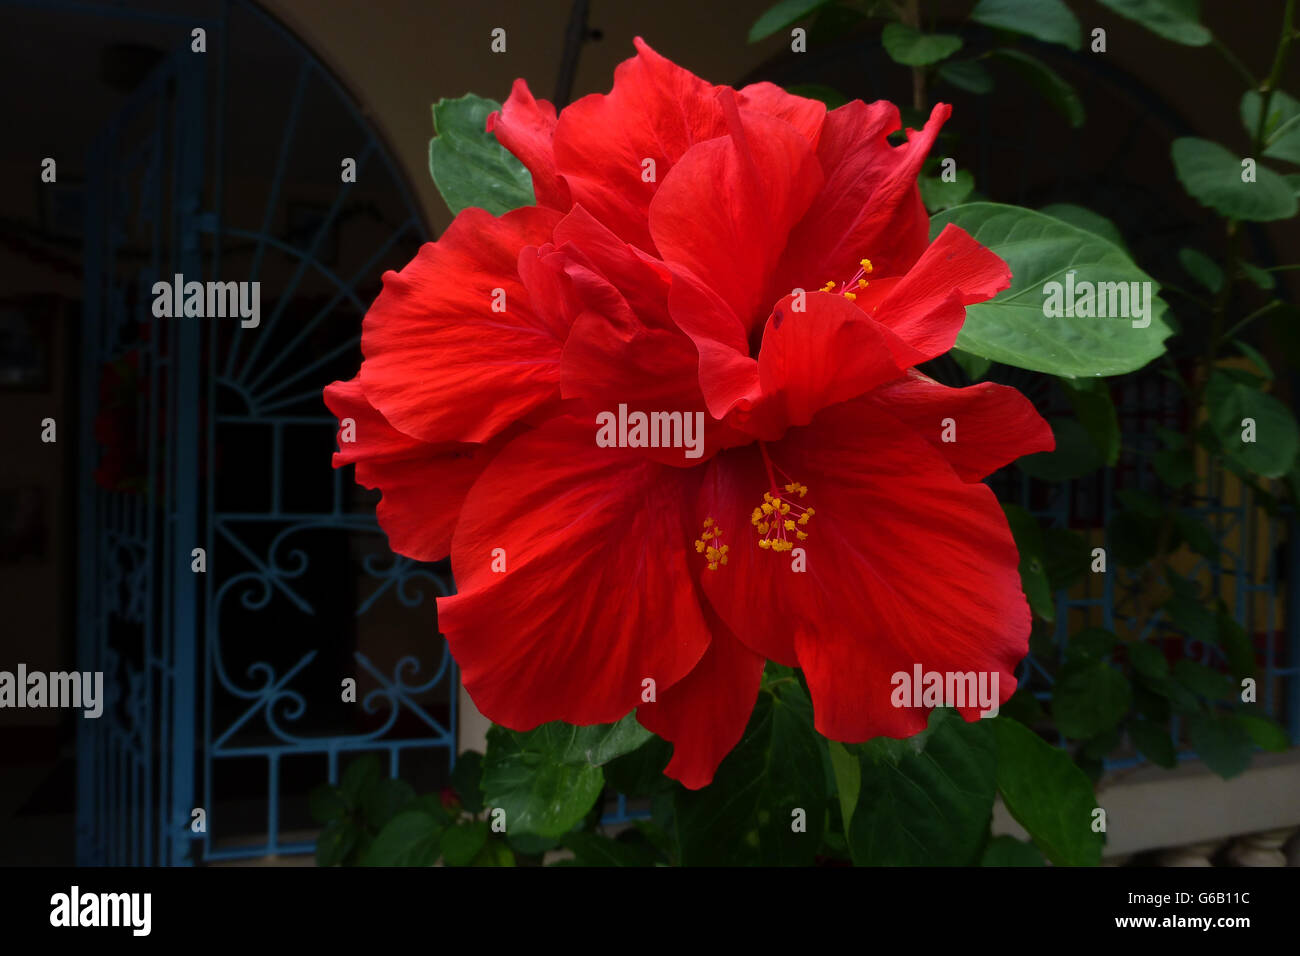 Hibiscus flowers popular across jamaica and many caribbean stock hibiscus flowers popular across jamaica and many caribbean islandses in several varieties red being the most common izmirmasajfo Choice Image